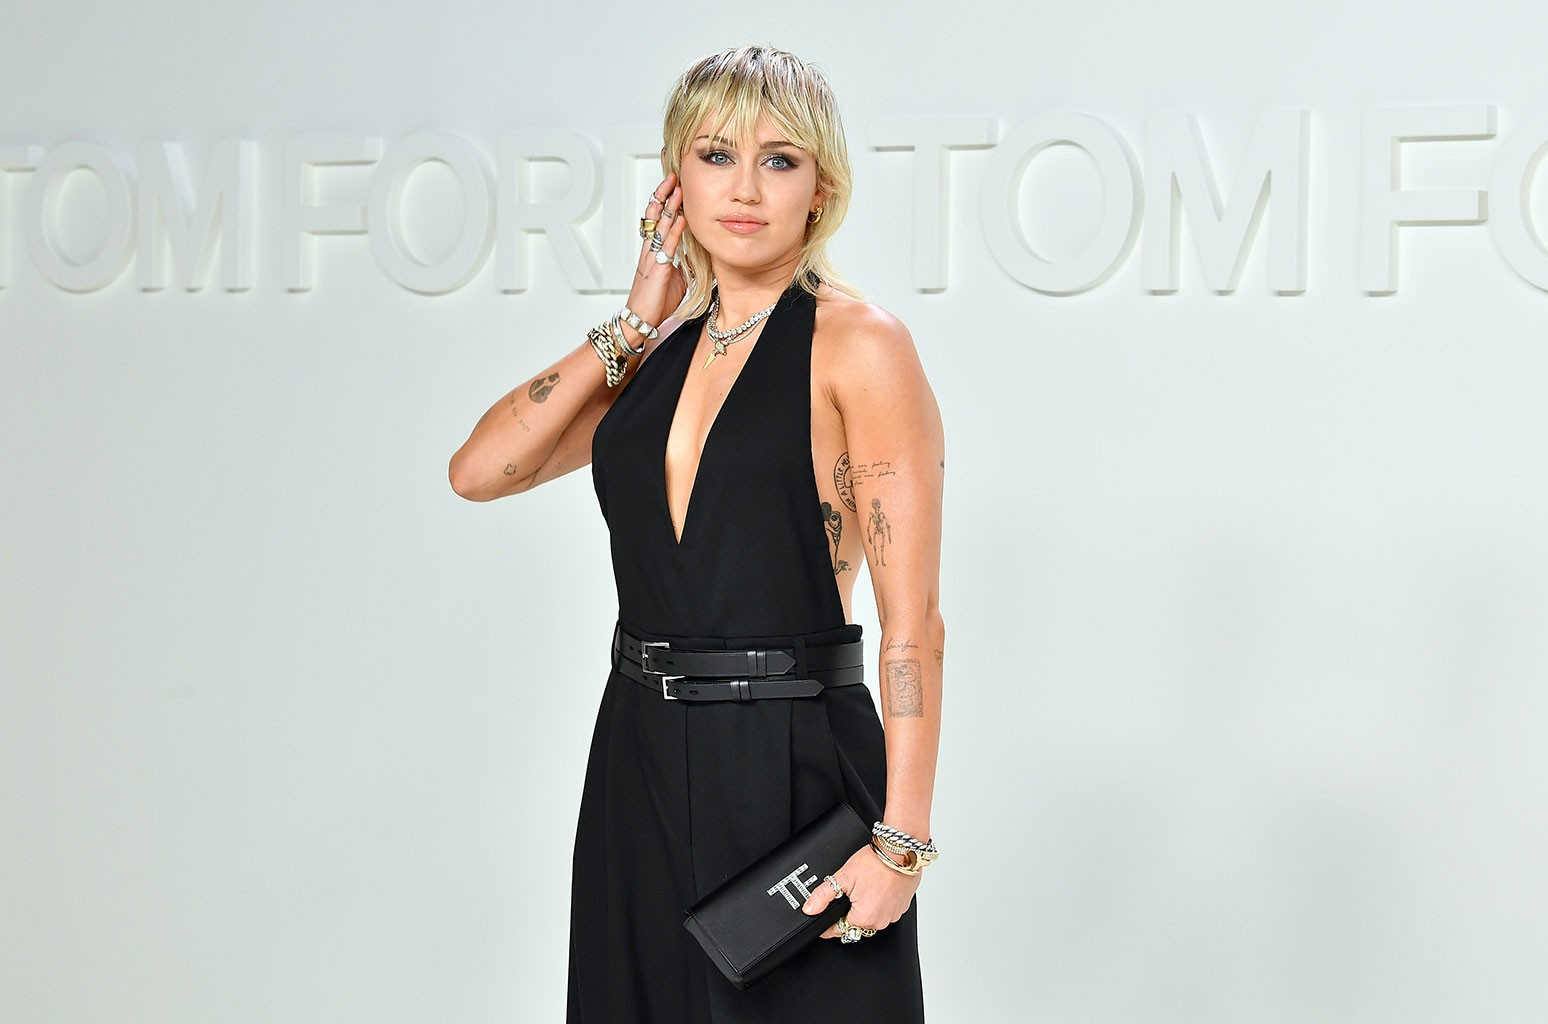 Miley Cyrus is Handing $1 Million in Stock to Smilers and They're Freaking Out